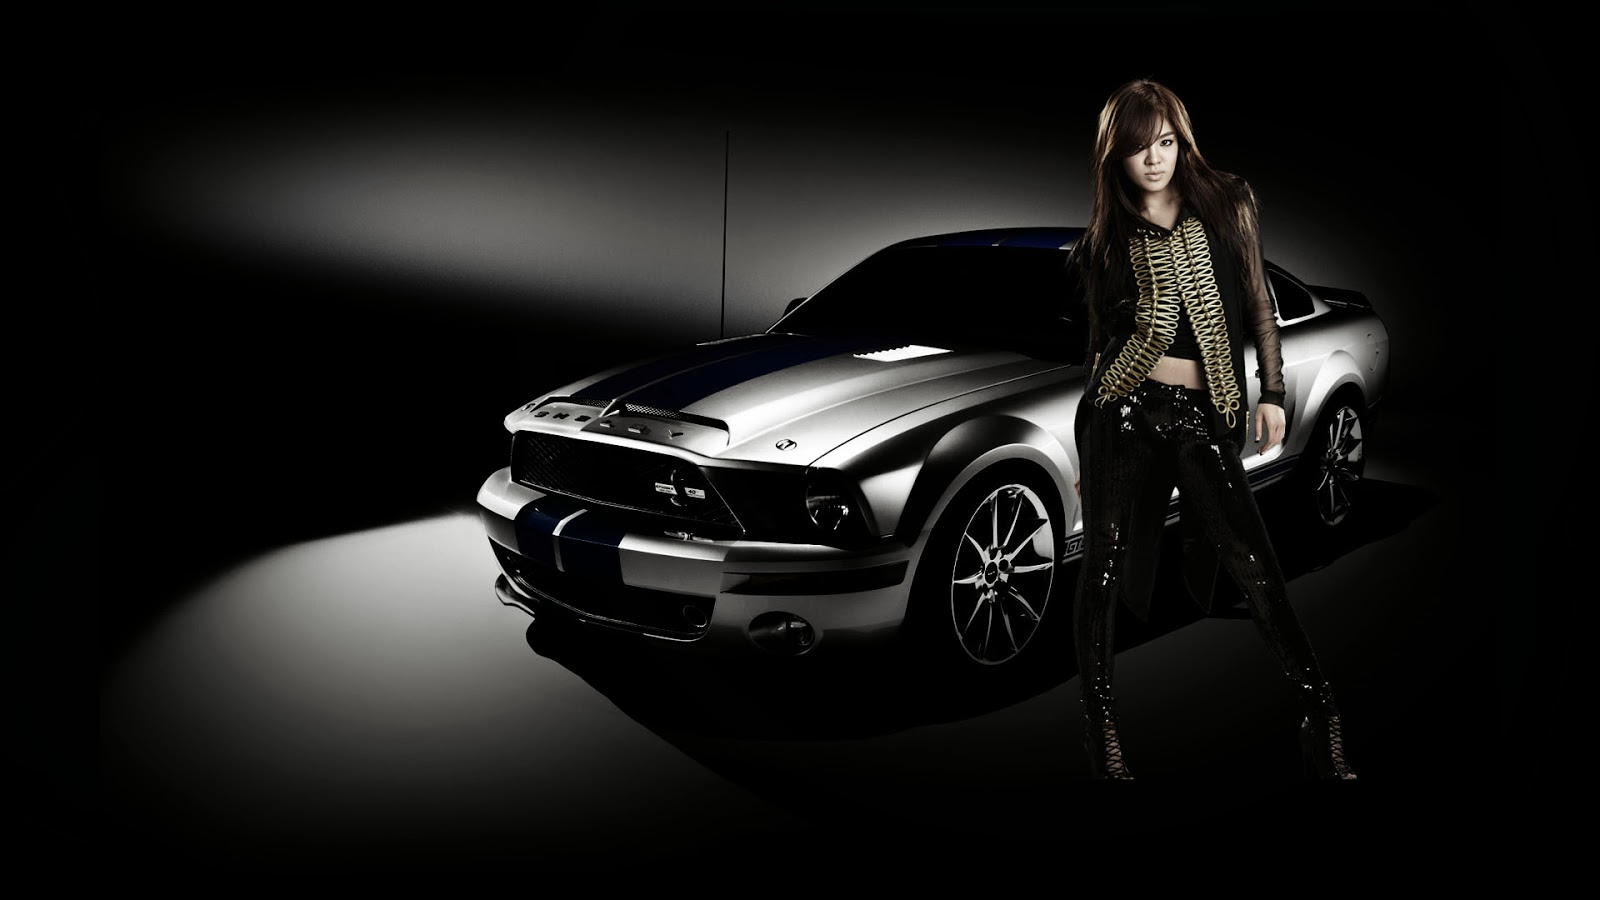 Beautiful Girl With Car Hd Wallpaper Car Wallpaper Mobile Wallpapers